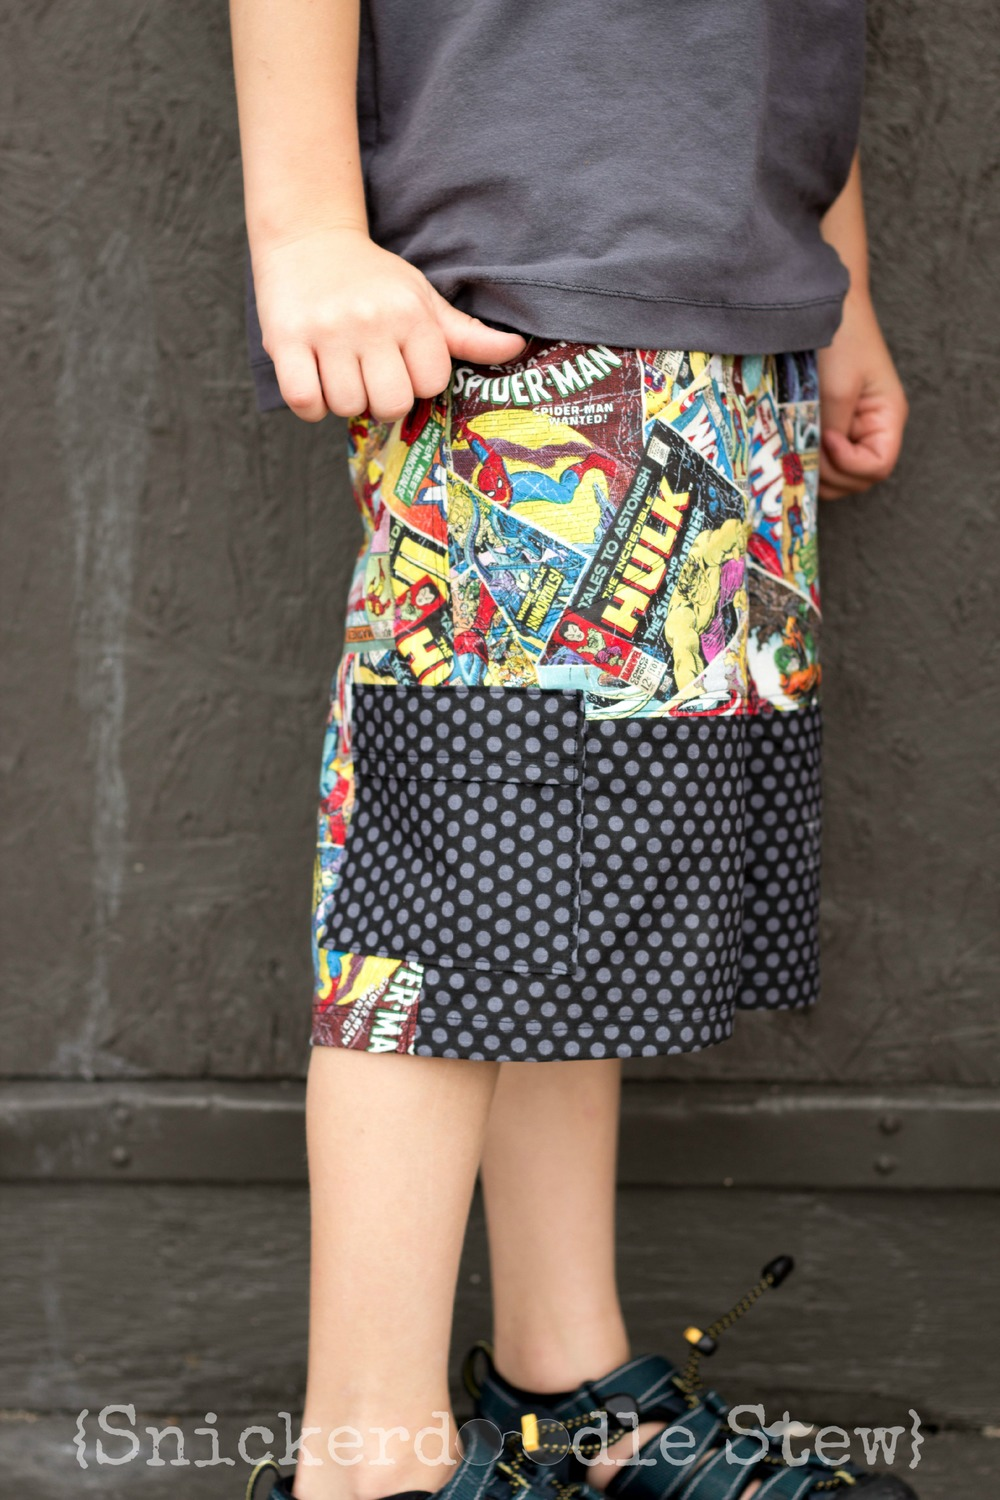 FIshsticks Designs' Sand and Sidewalk Boardshorts and Skate Pants Pattern